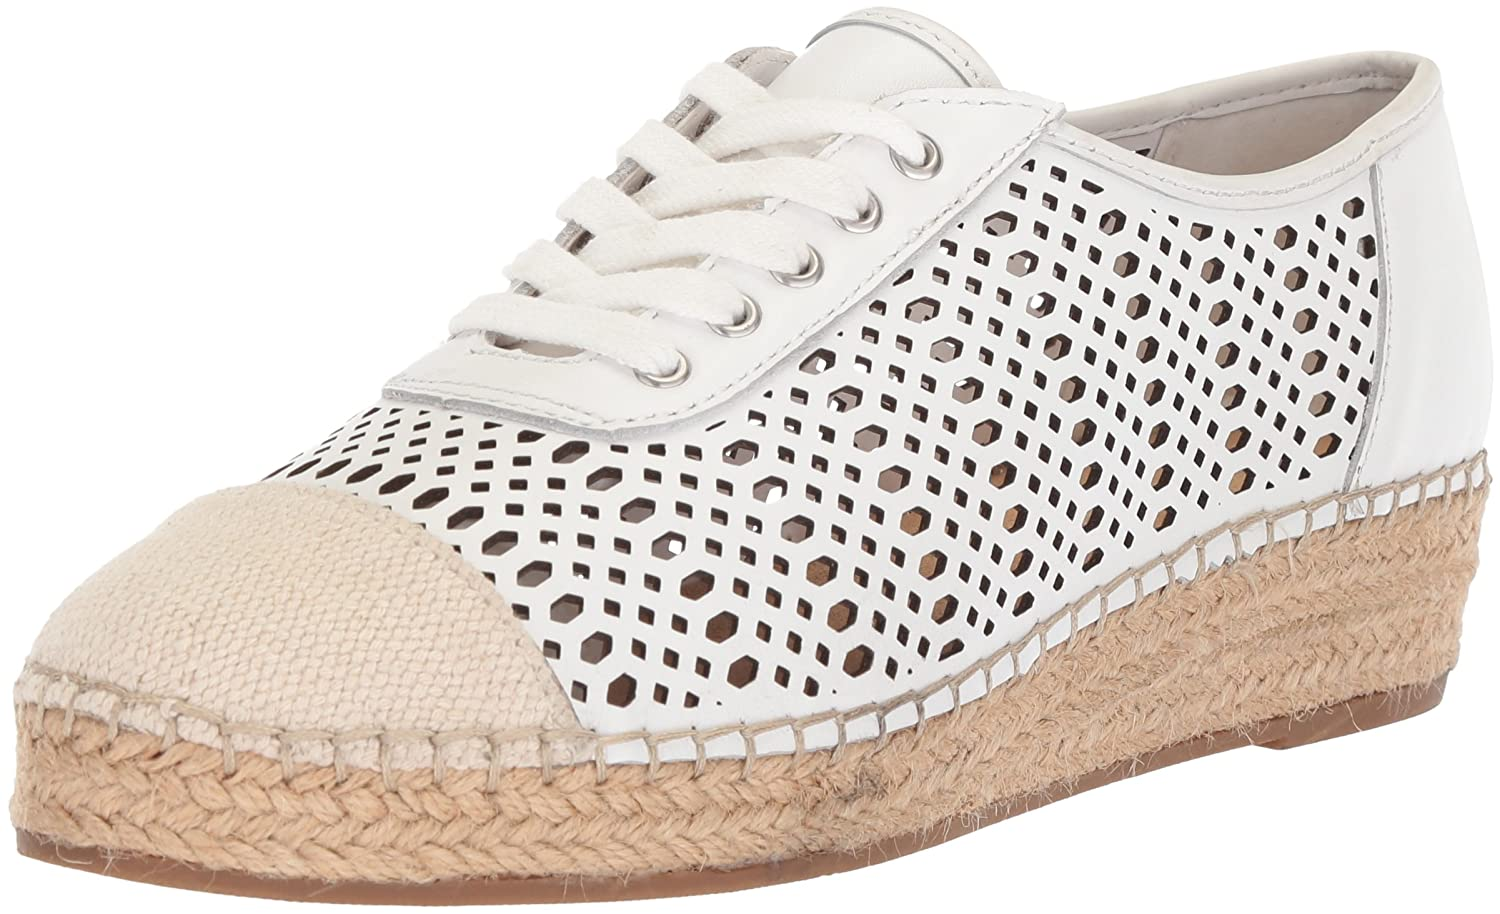 Bella Vita Women's Clementine Sneaker B0781VW259 9.5 N US|White Leather